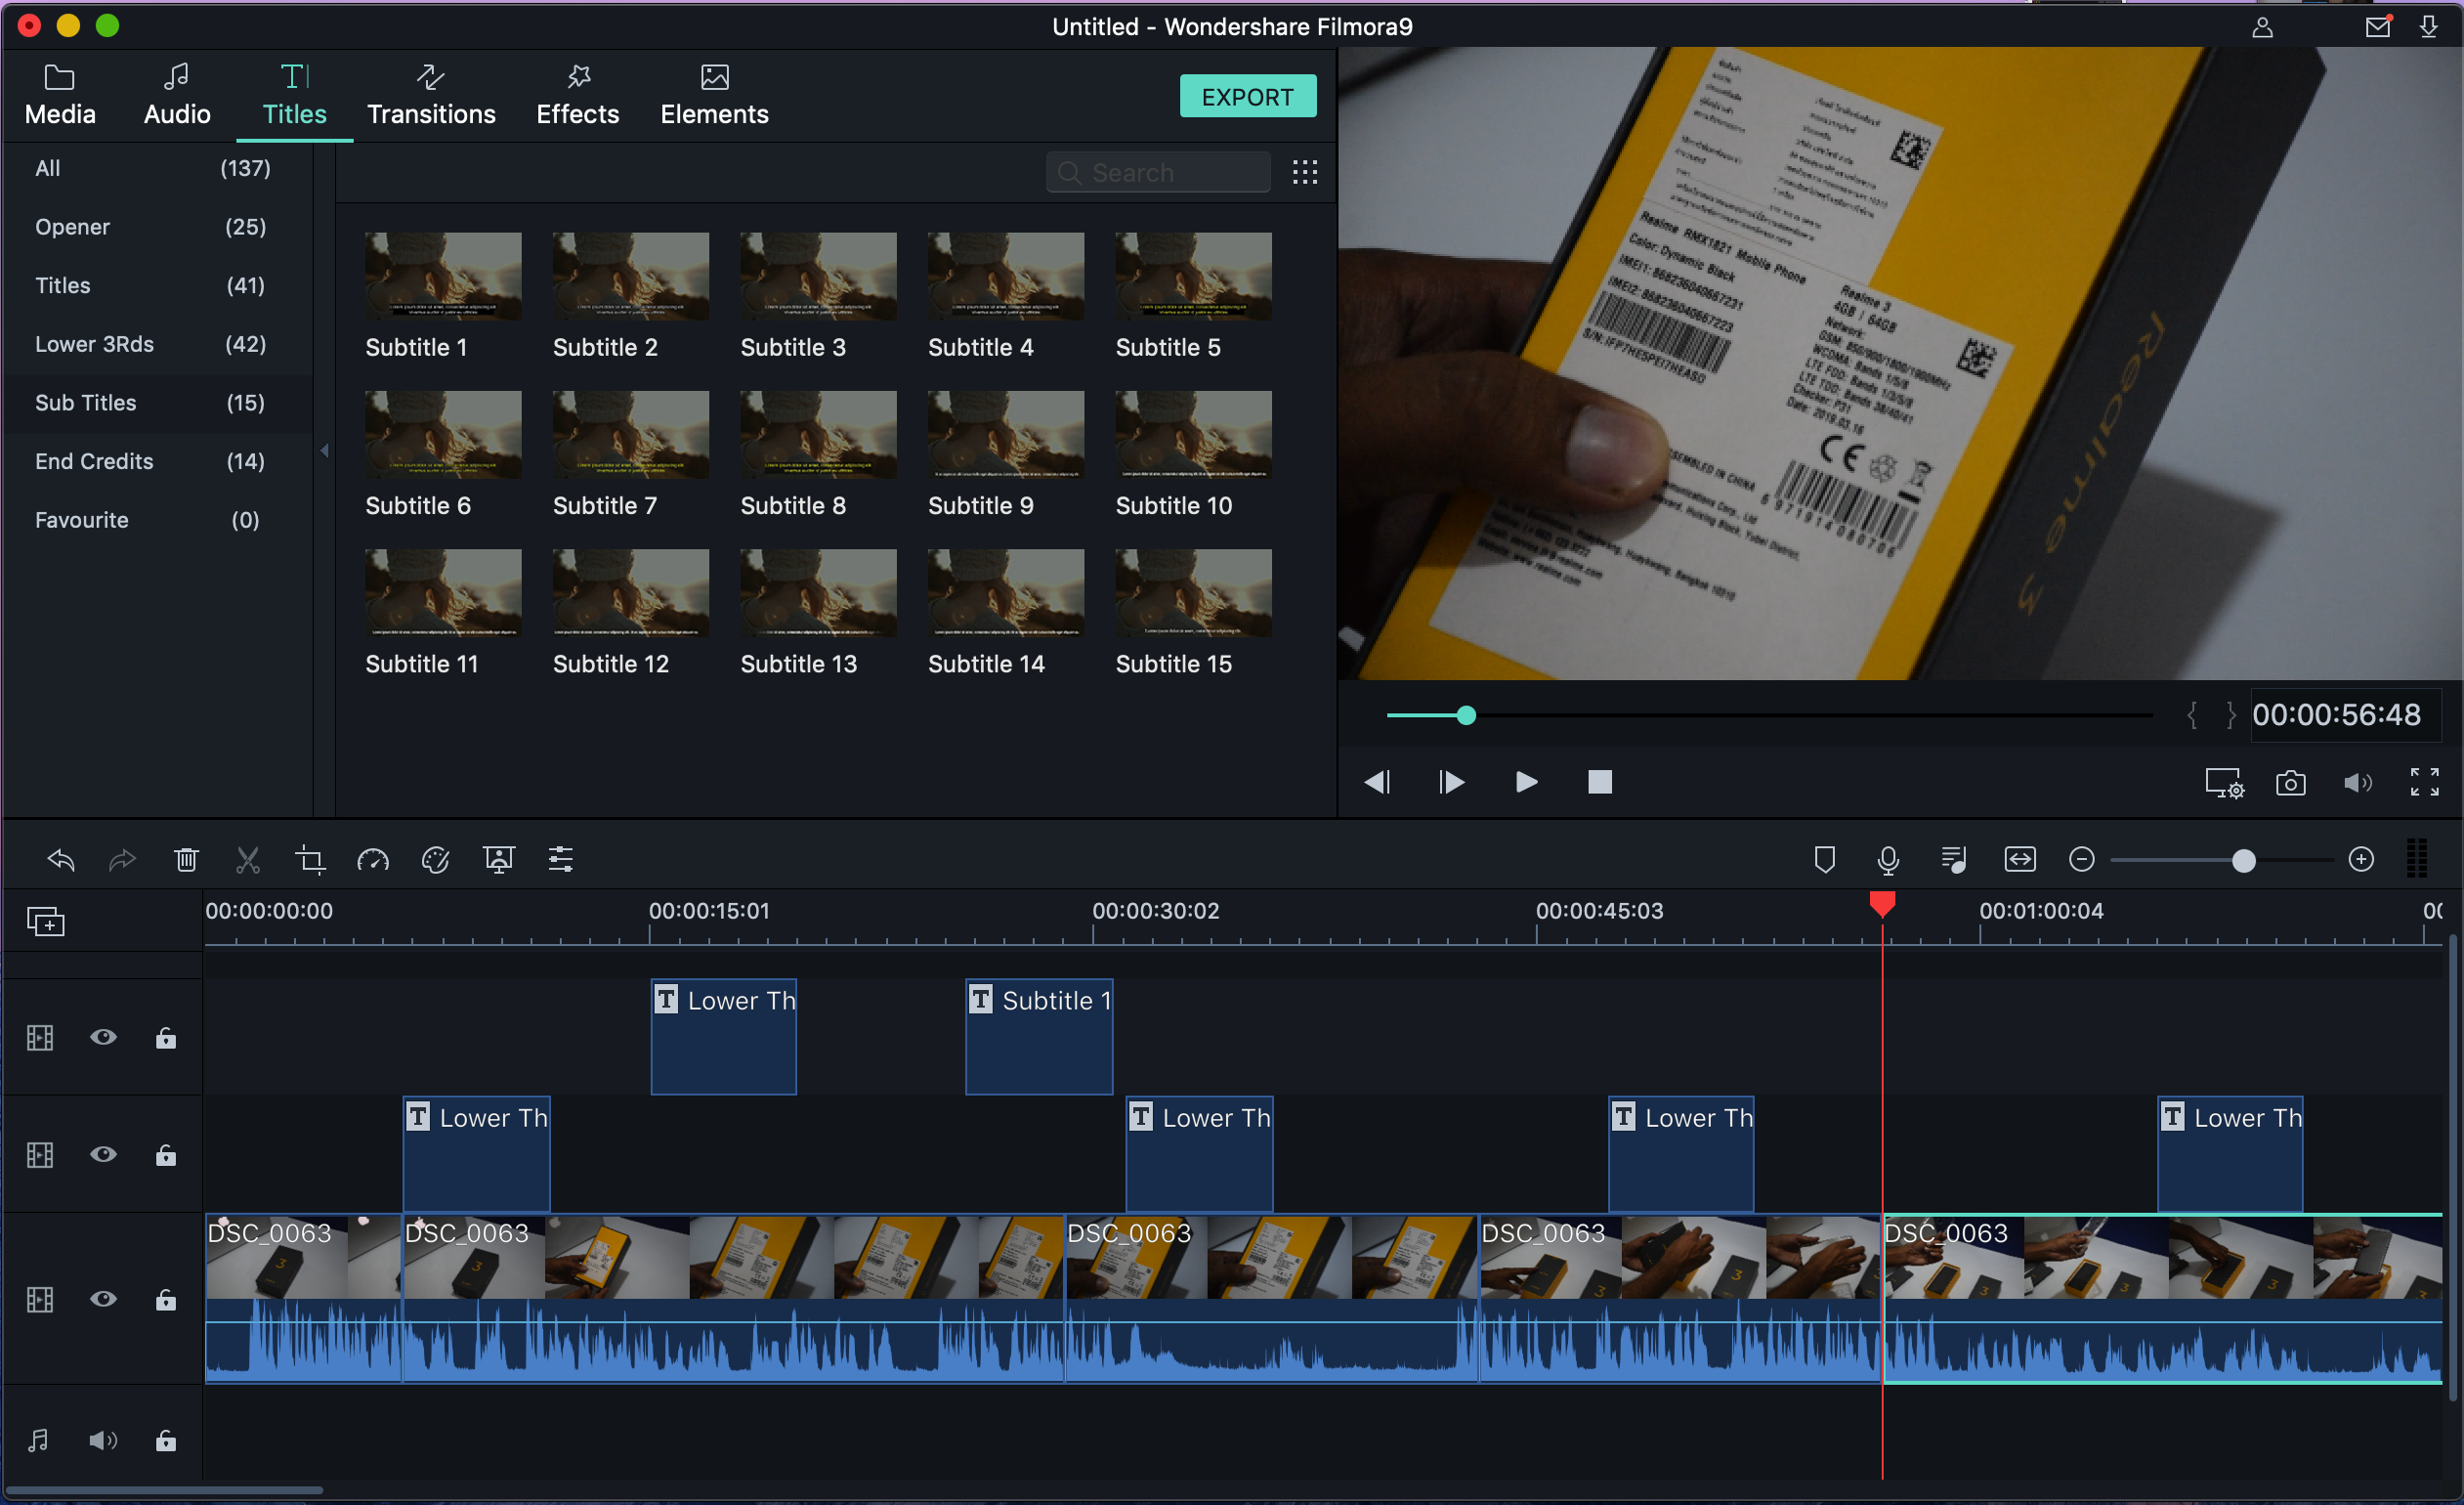 Wondershare Filmora 15 Review An Easy to Use Video Editor for All ...